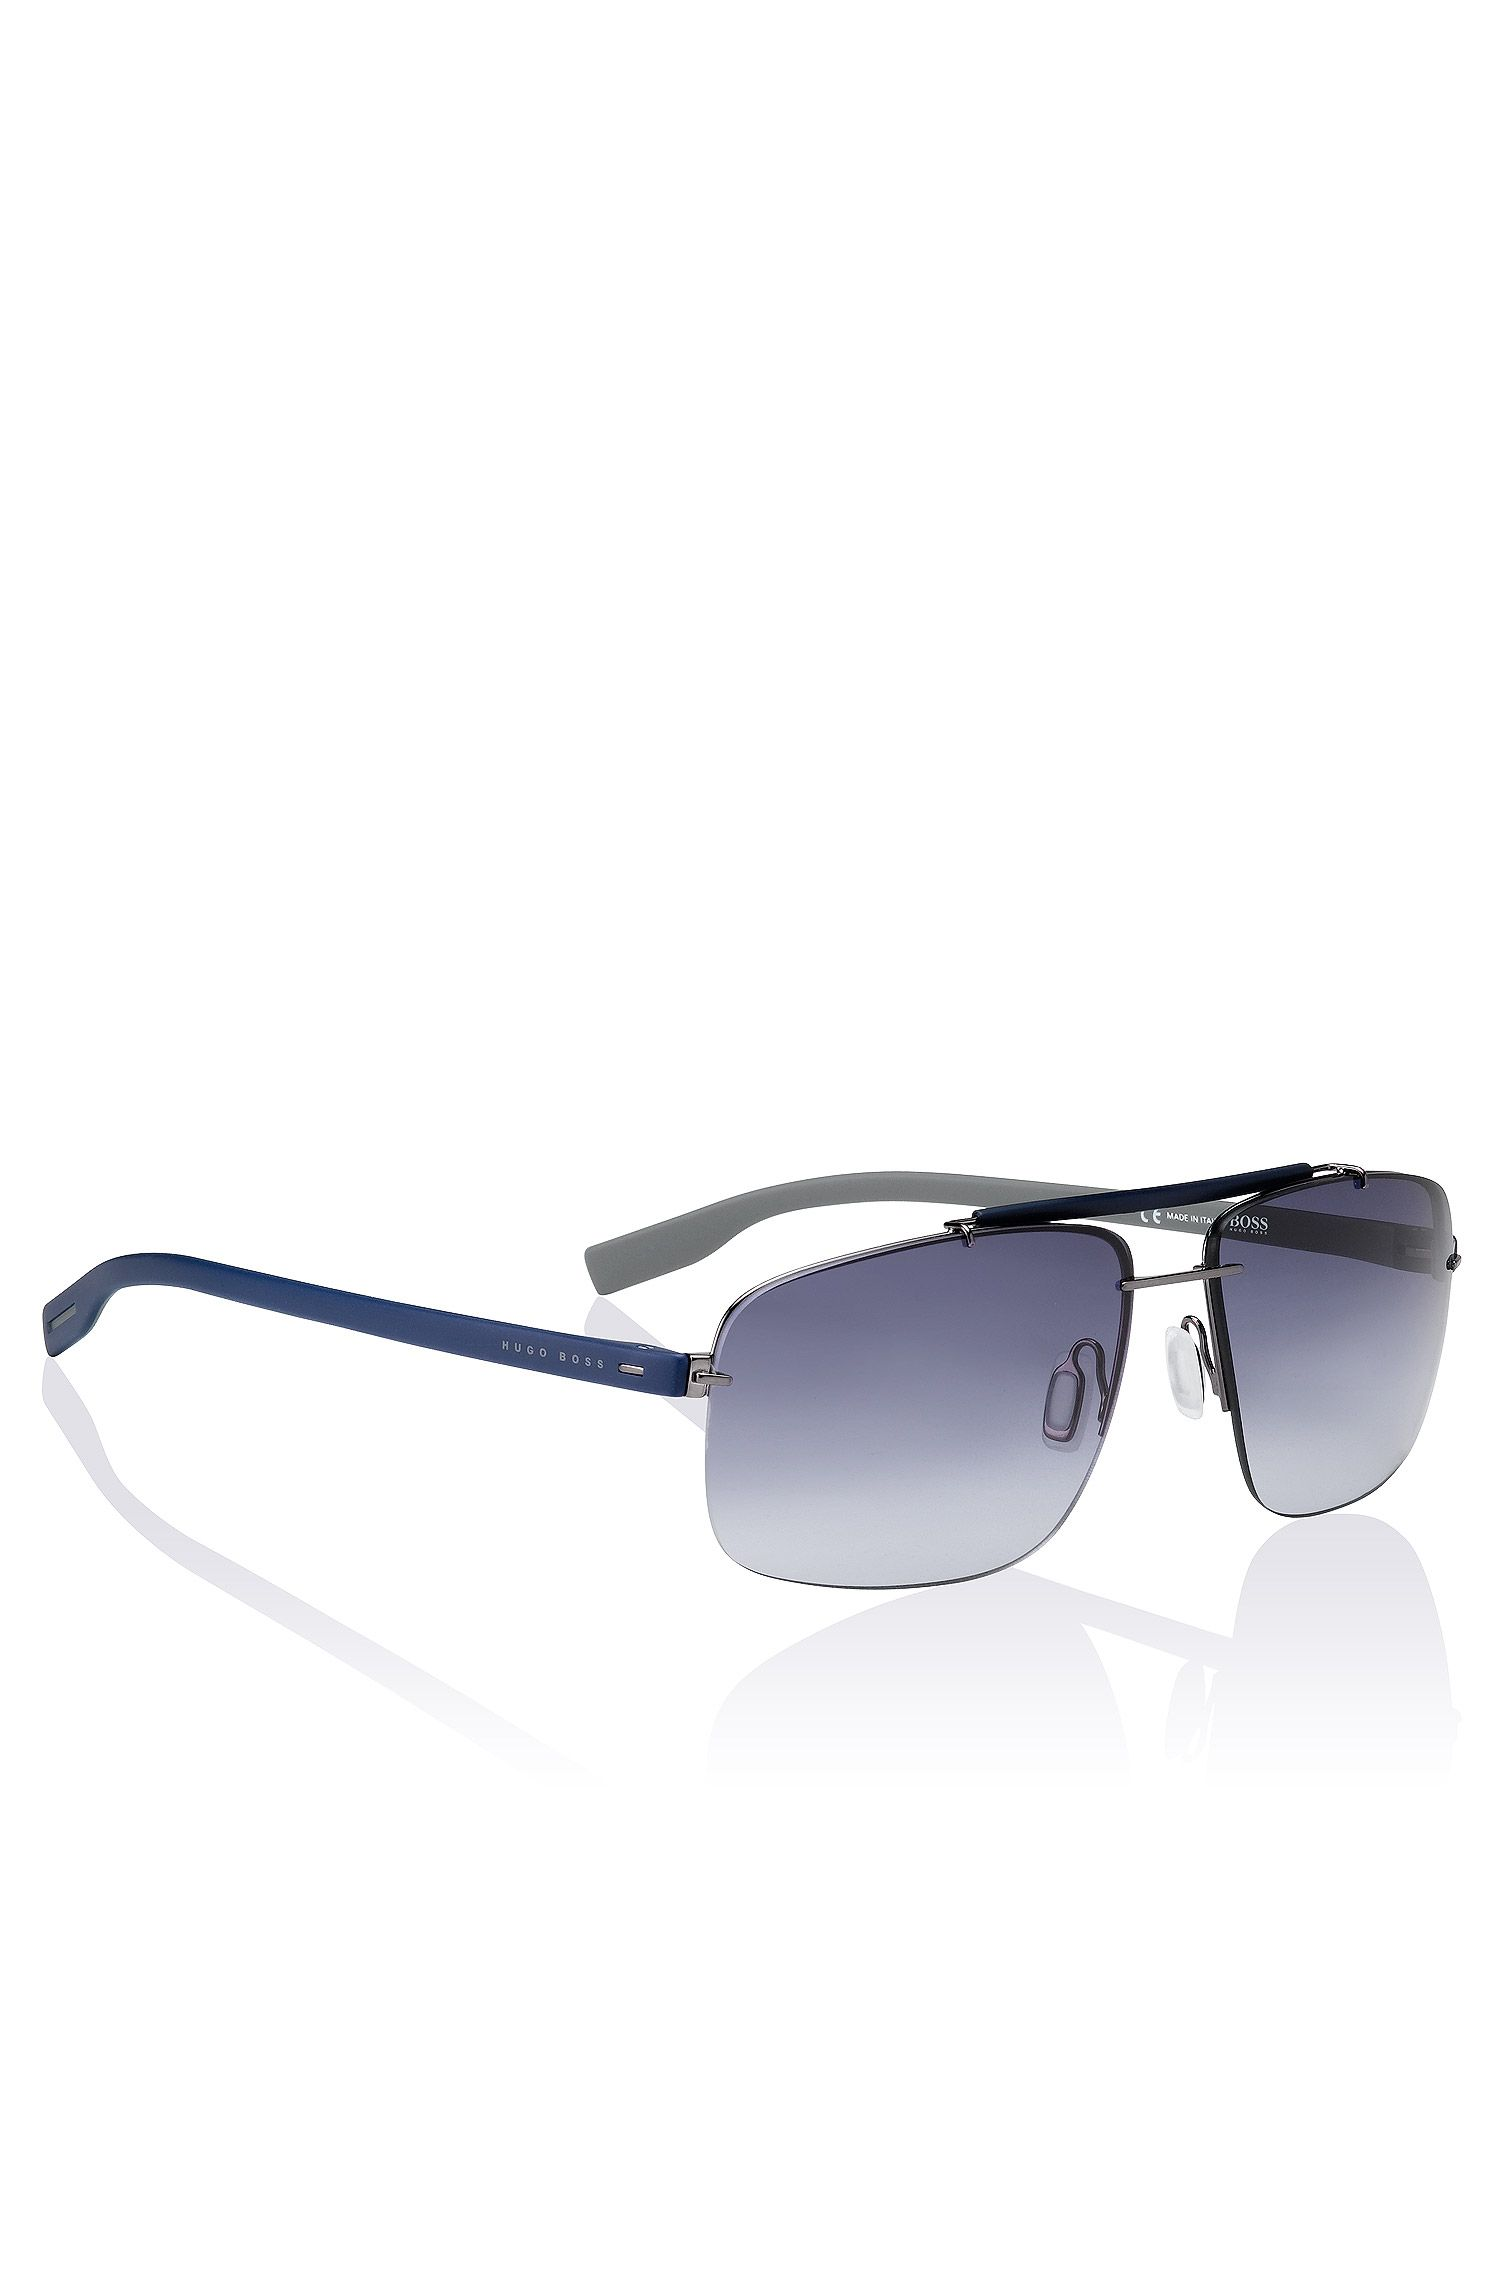 Sunglasses 'BOSS 0608'